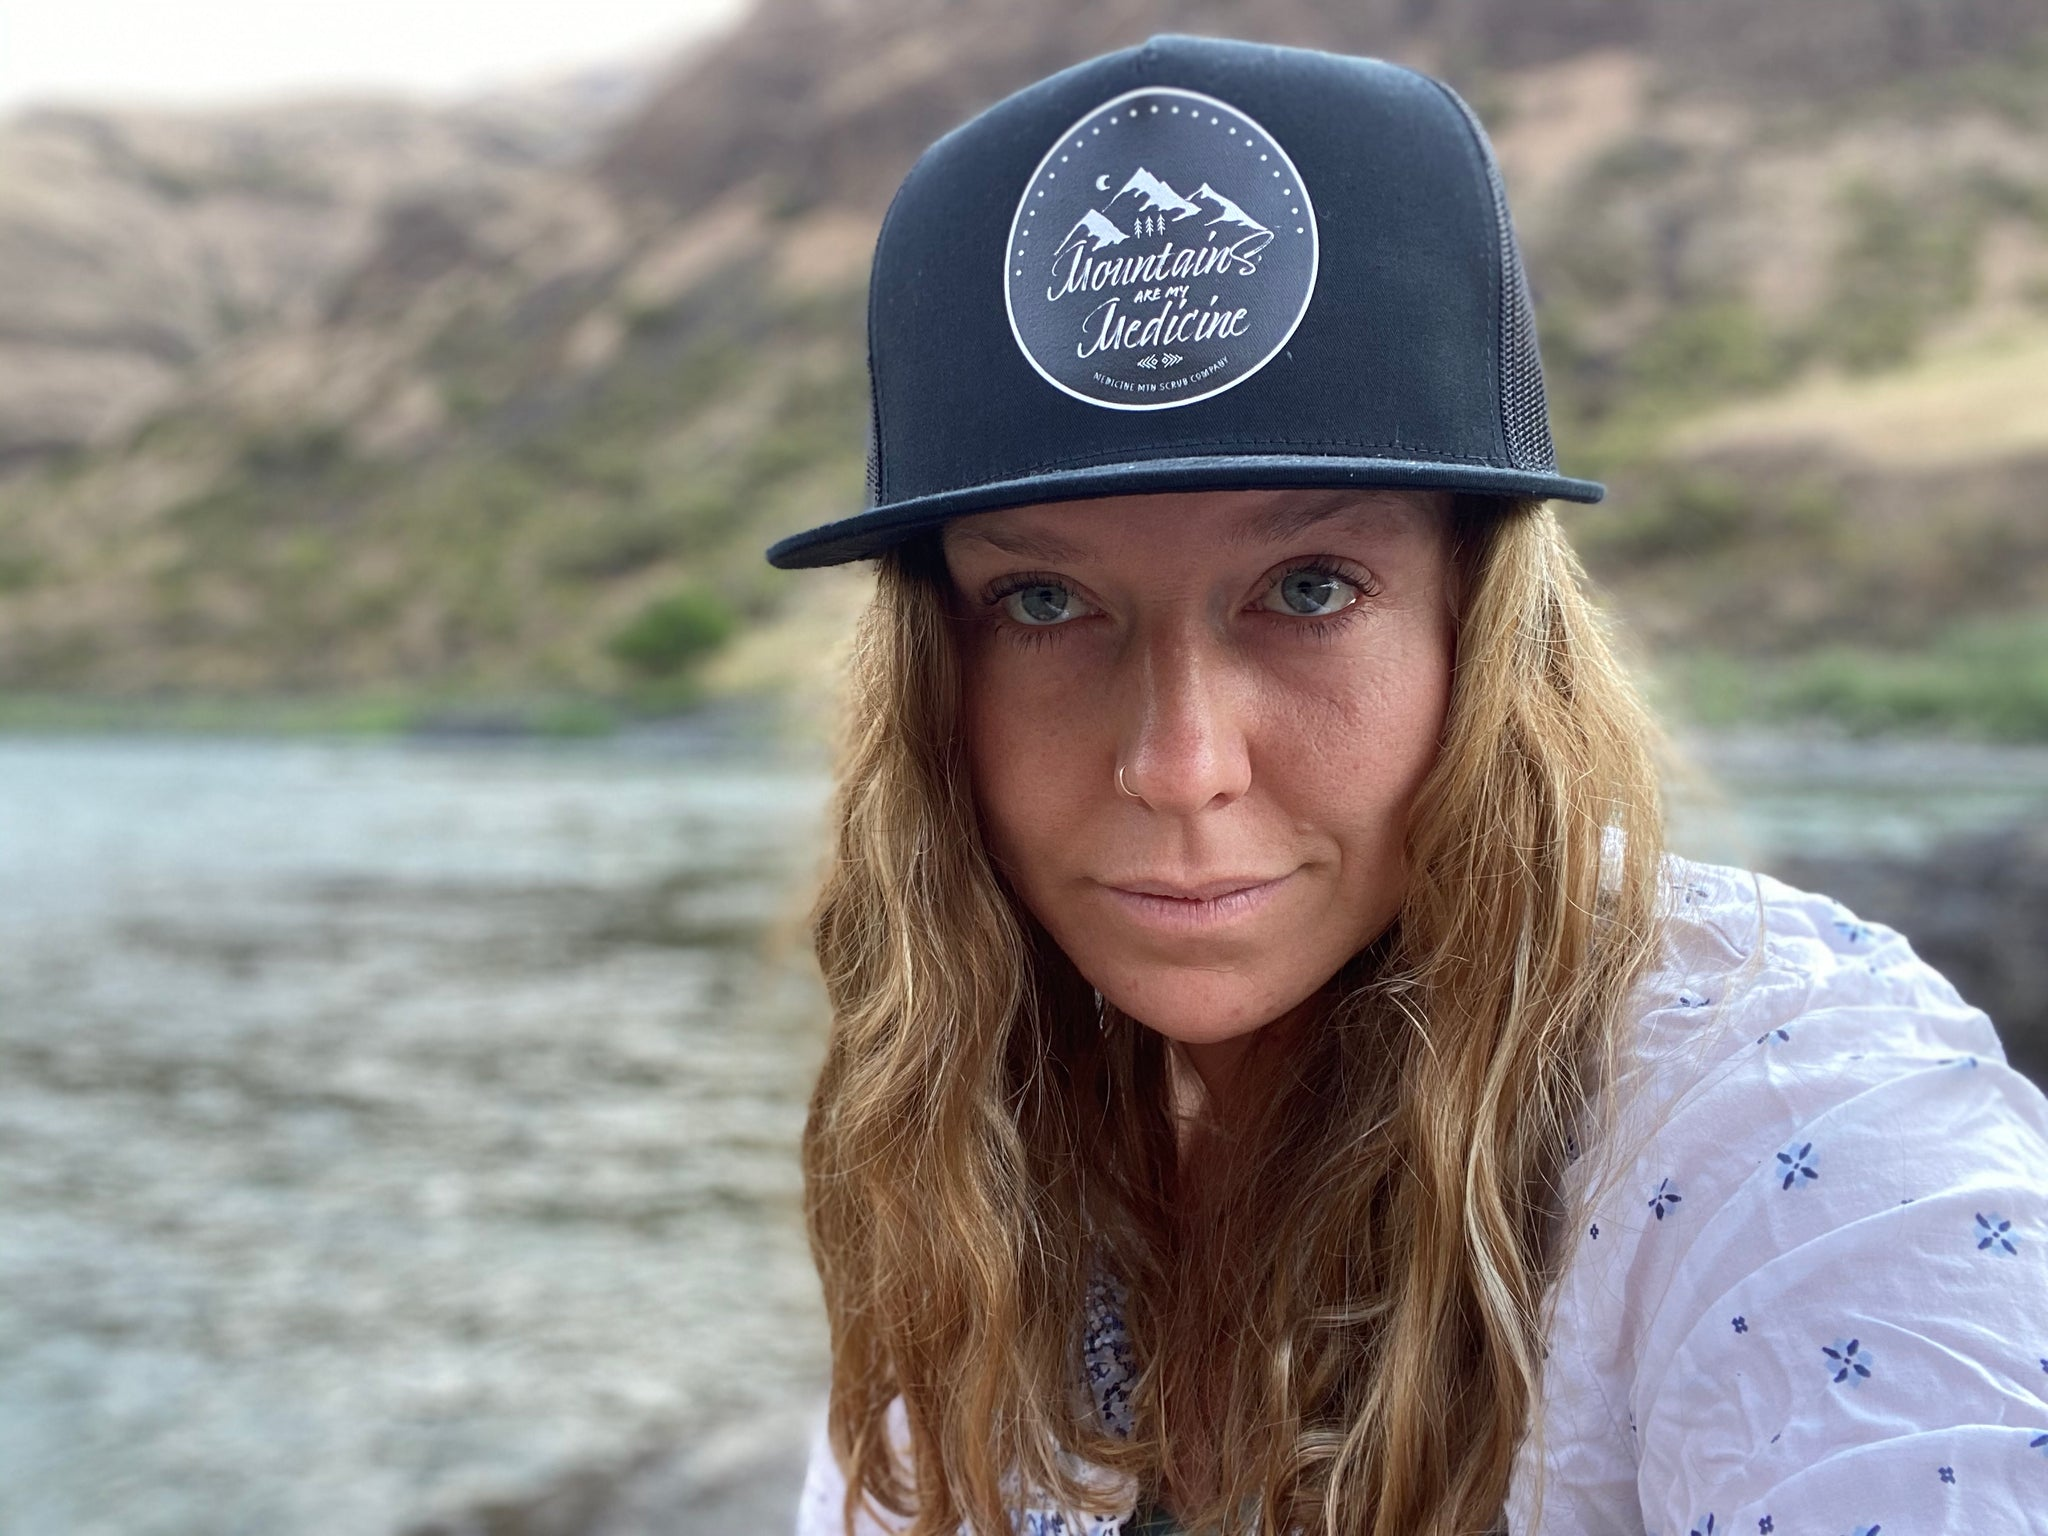 Mountains are my Medicine Logo trucker hat worn by Oriana Turley